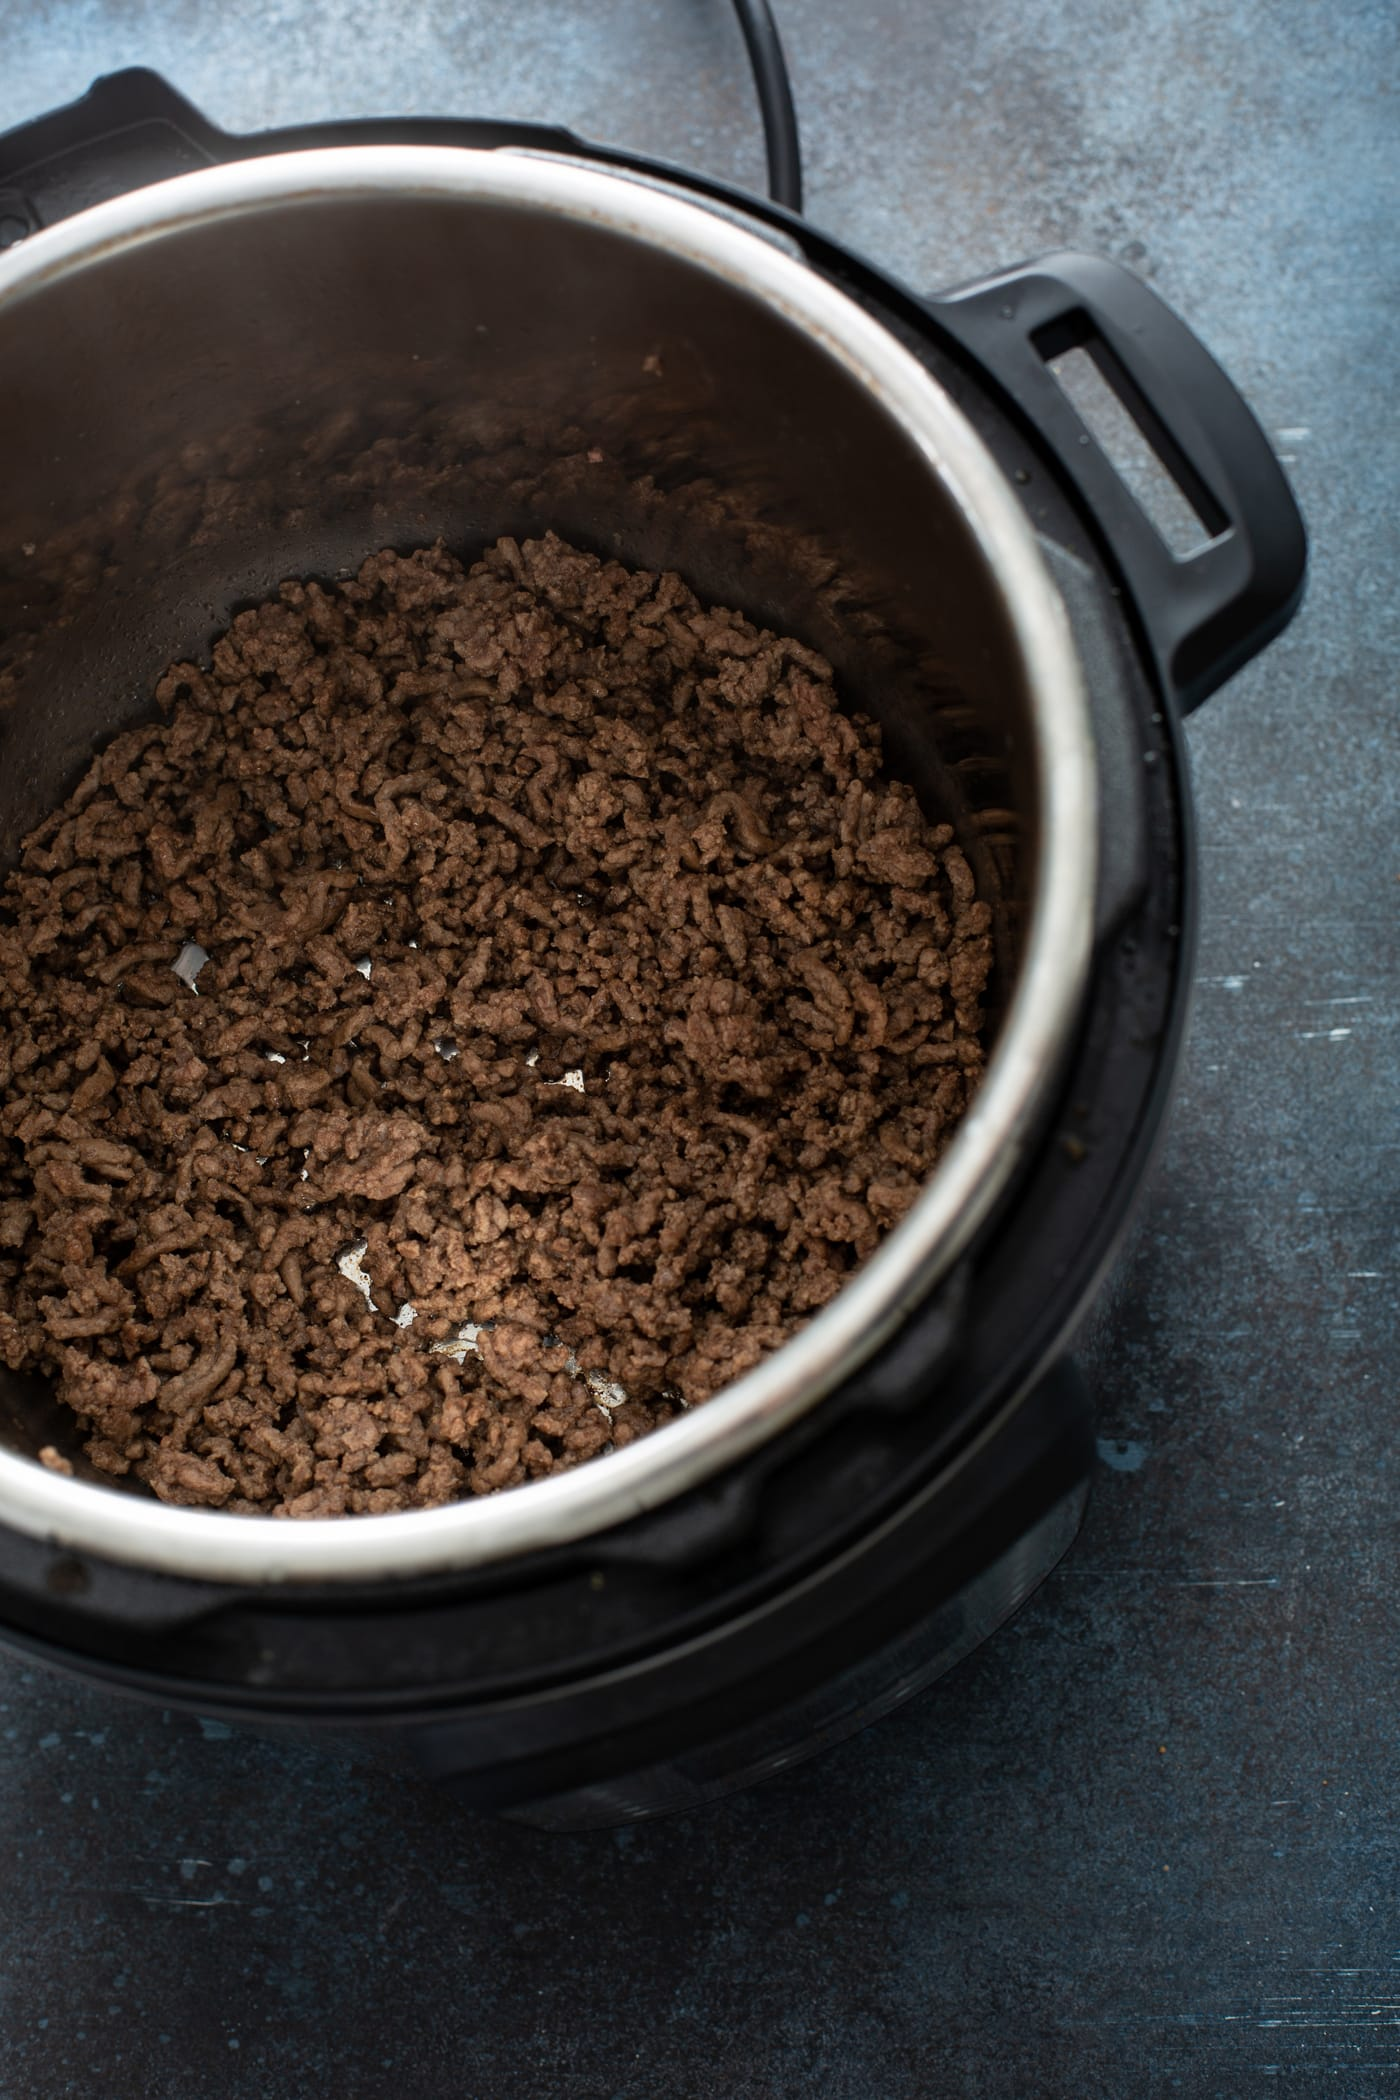 An instant pot containing browned ground beef.